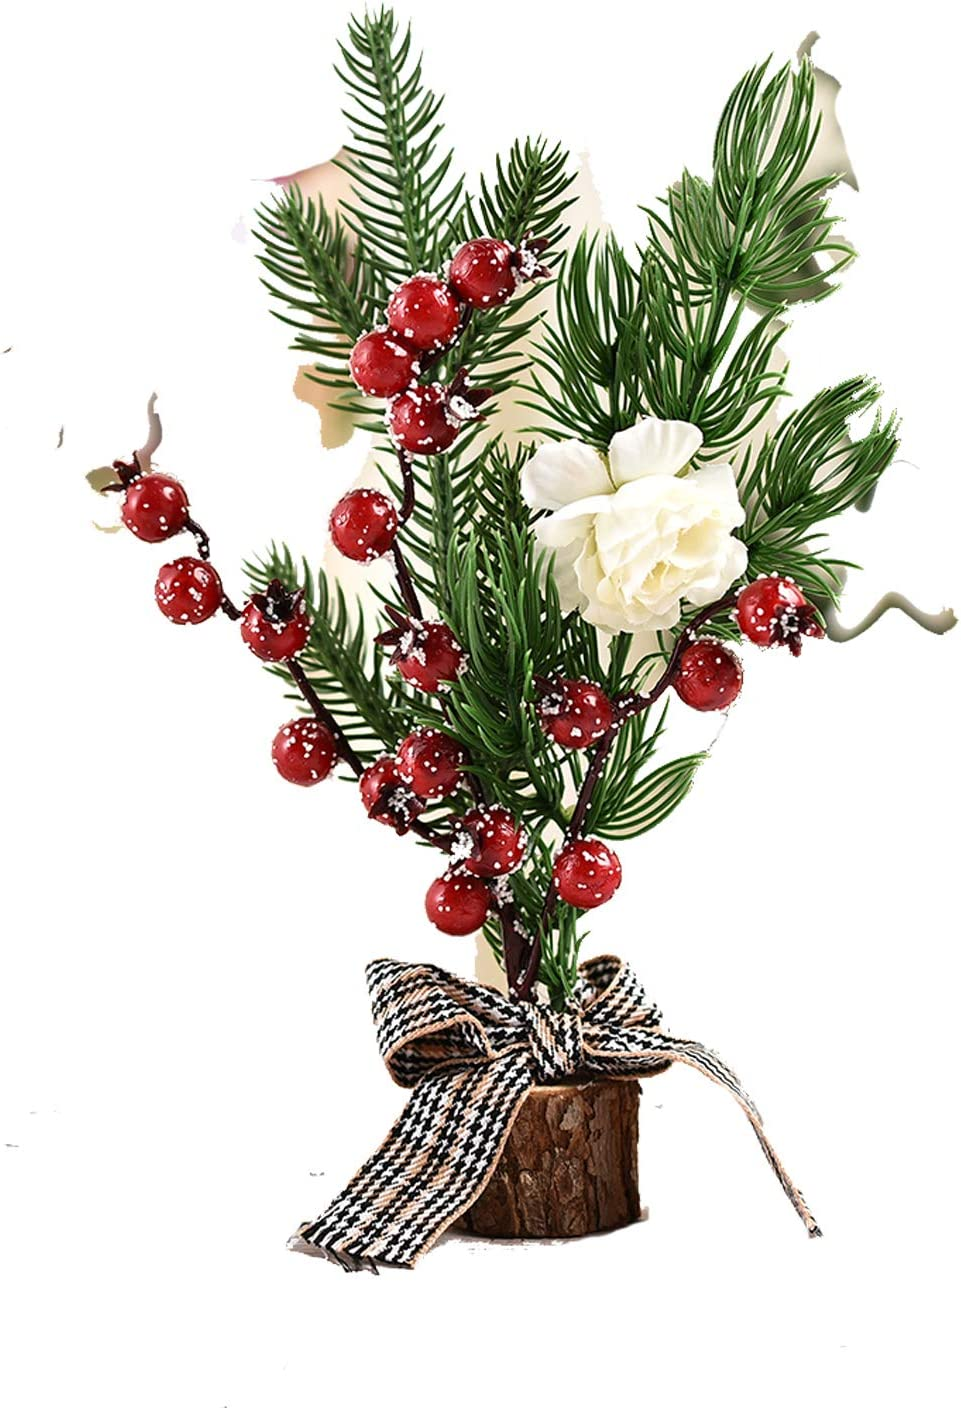 DRYT 9.8Inch Mini Christmas Tree Height Nordic Style Tabletop Wooden Bas White Flowers and red Fruits Mini Christmas Pine Tree